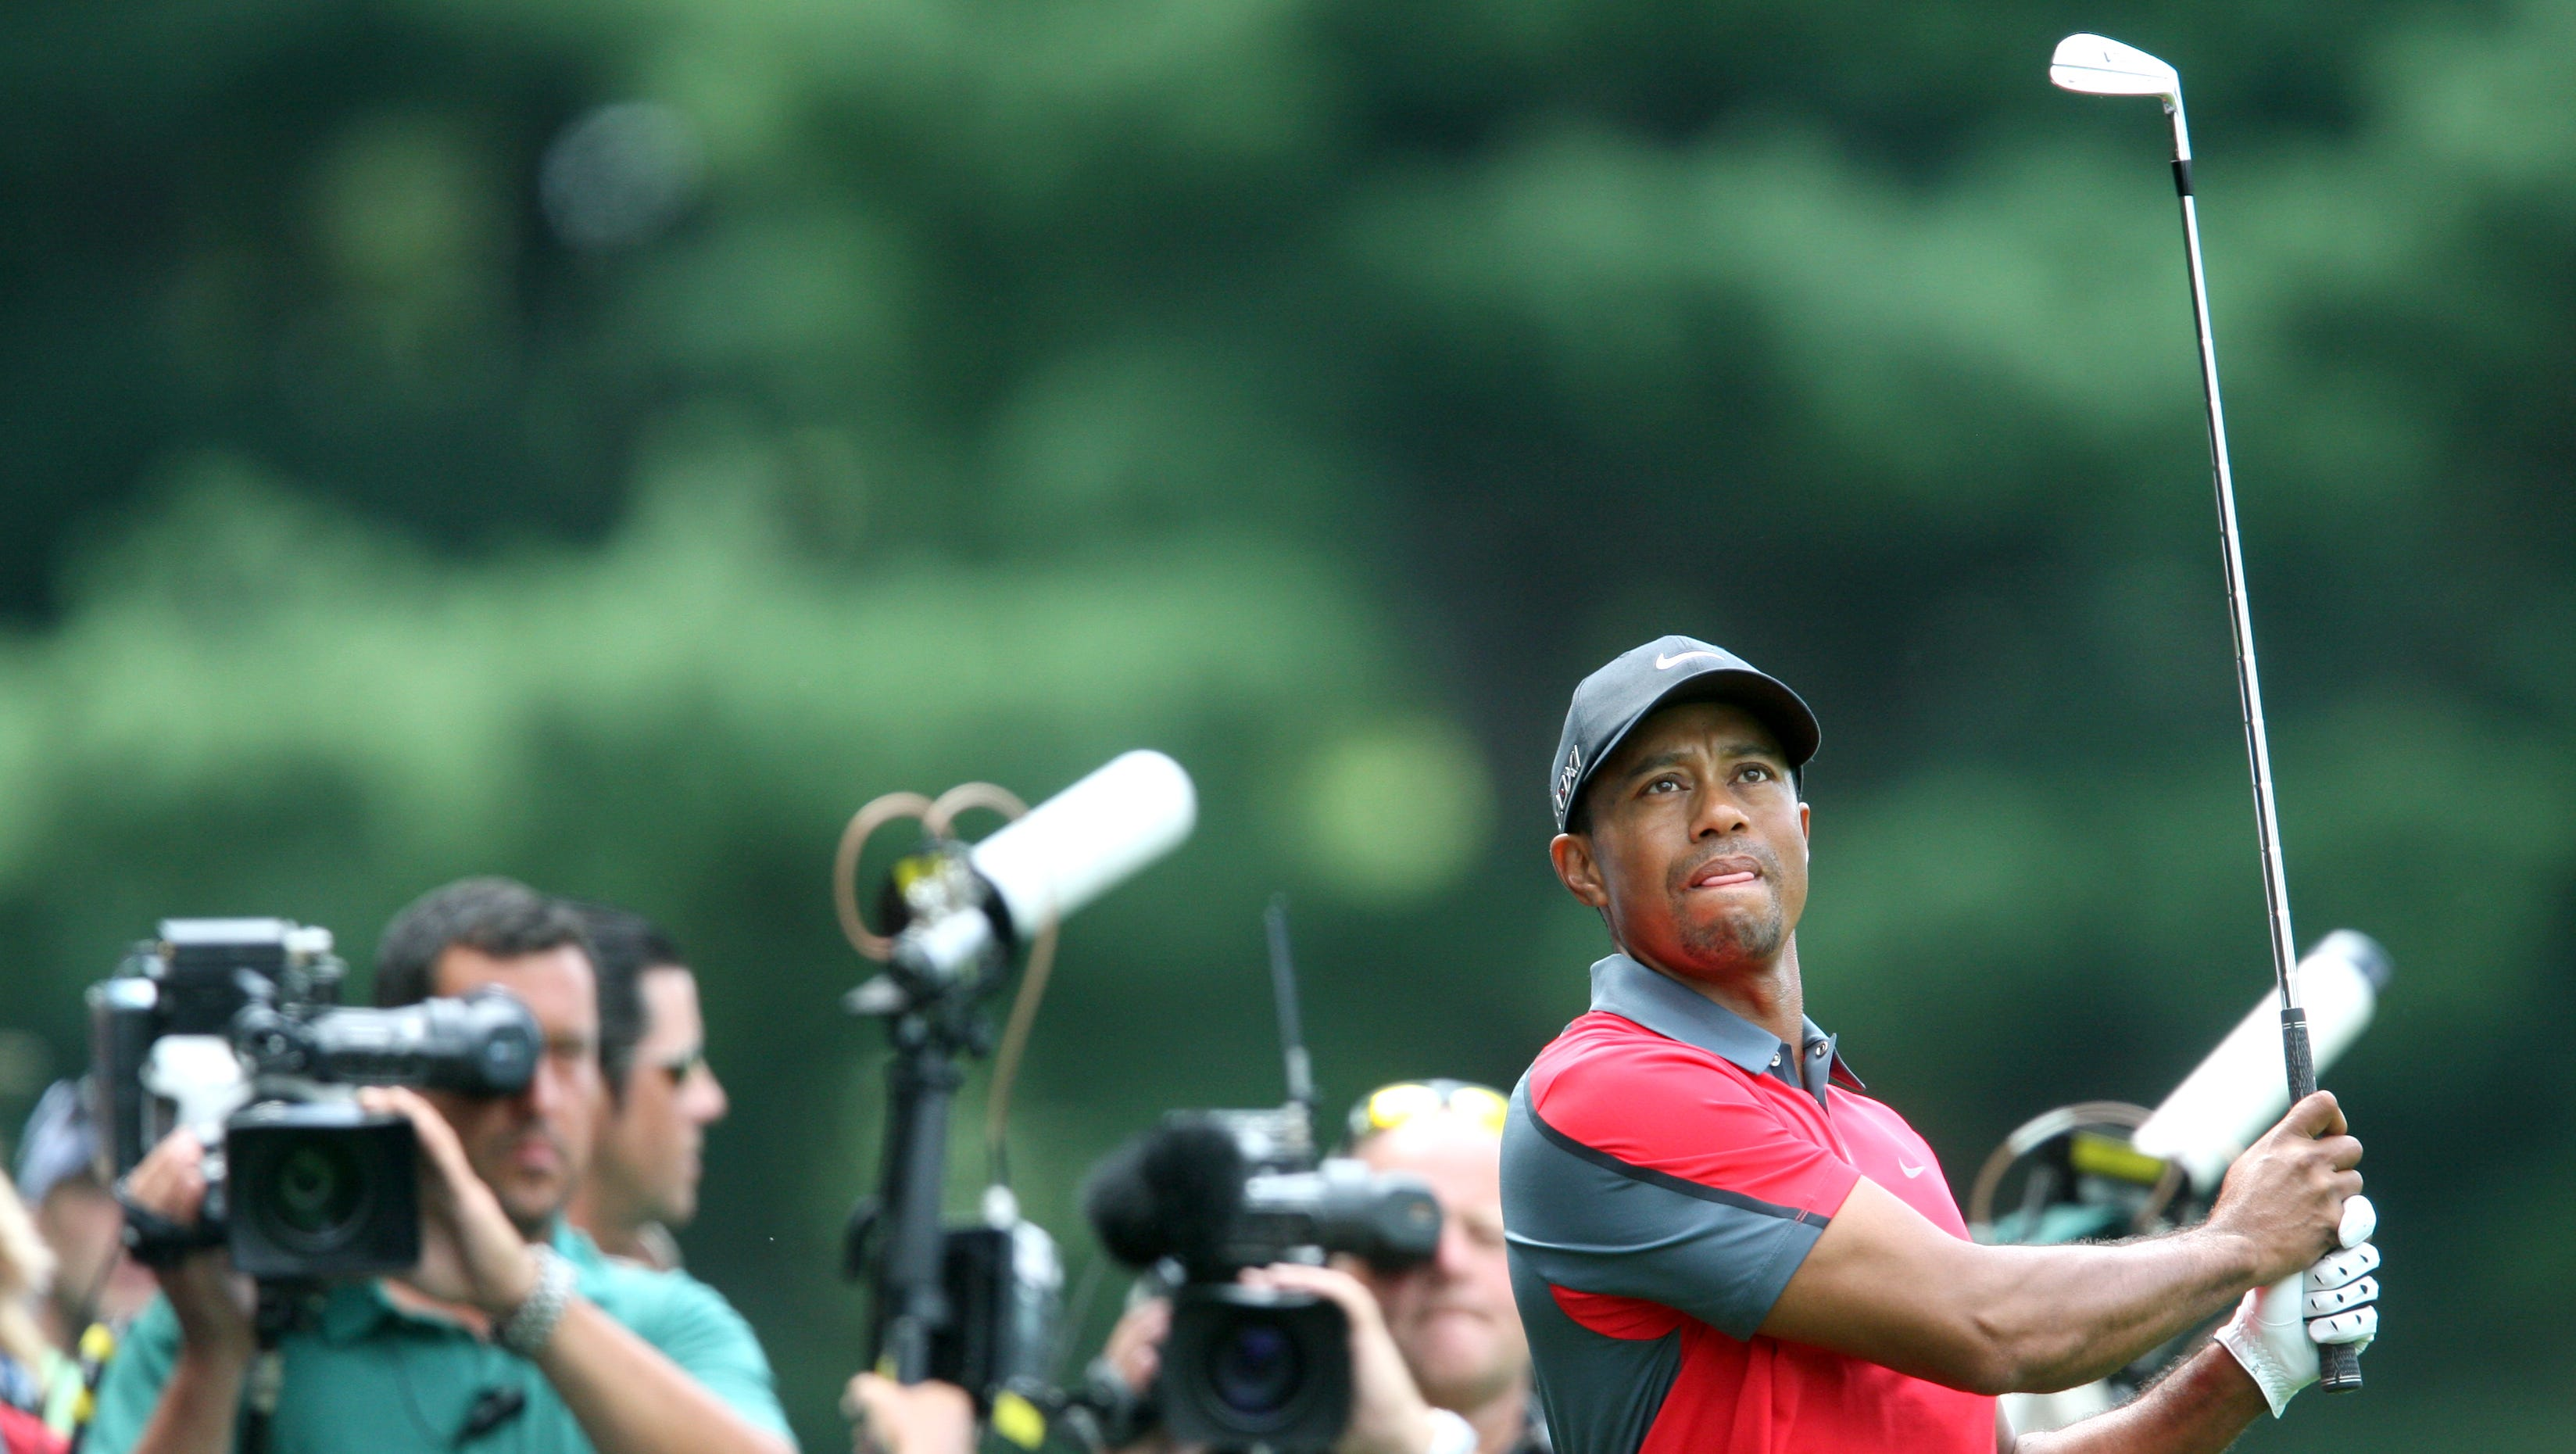 Tiger Woods swings on the 4 fairway during the final round of the 95th PGA championship at Oak Hill Country Club.